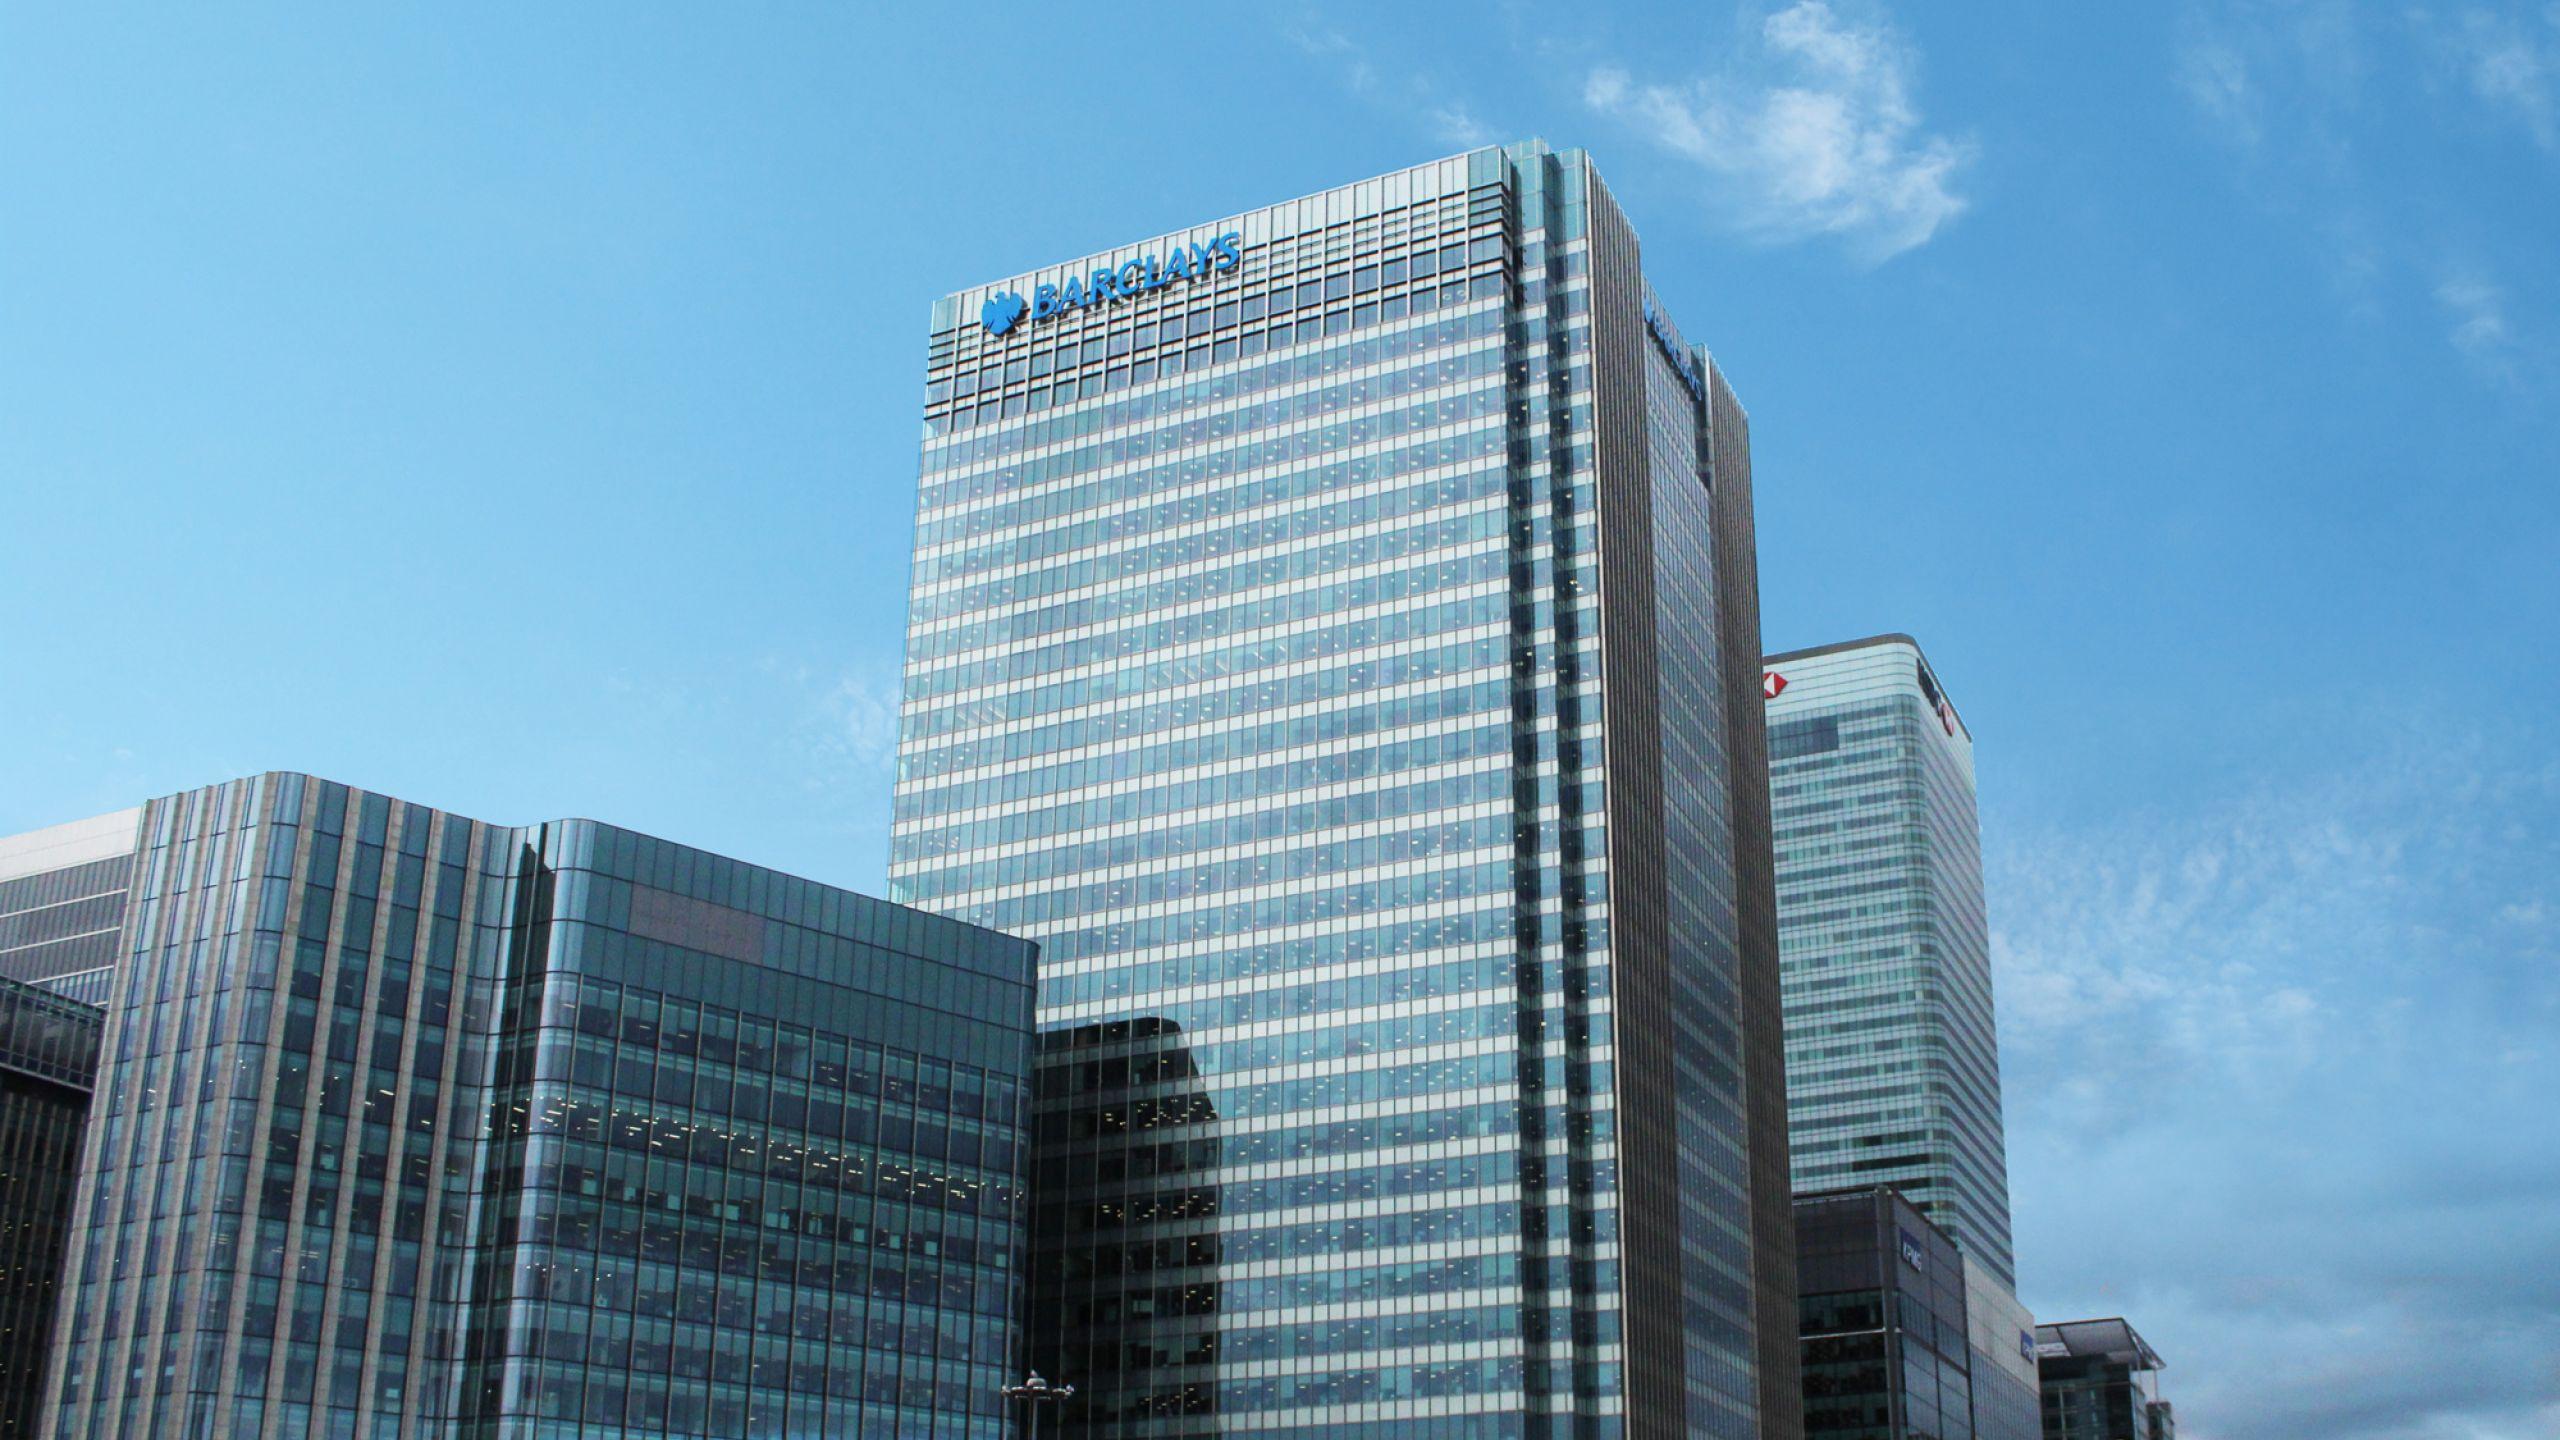 Barclays investment bank canary wharf cys investments special dividend